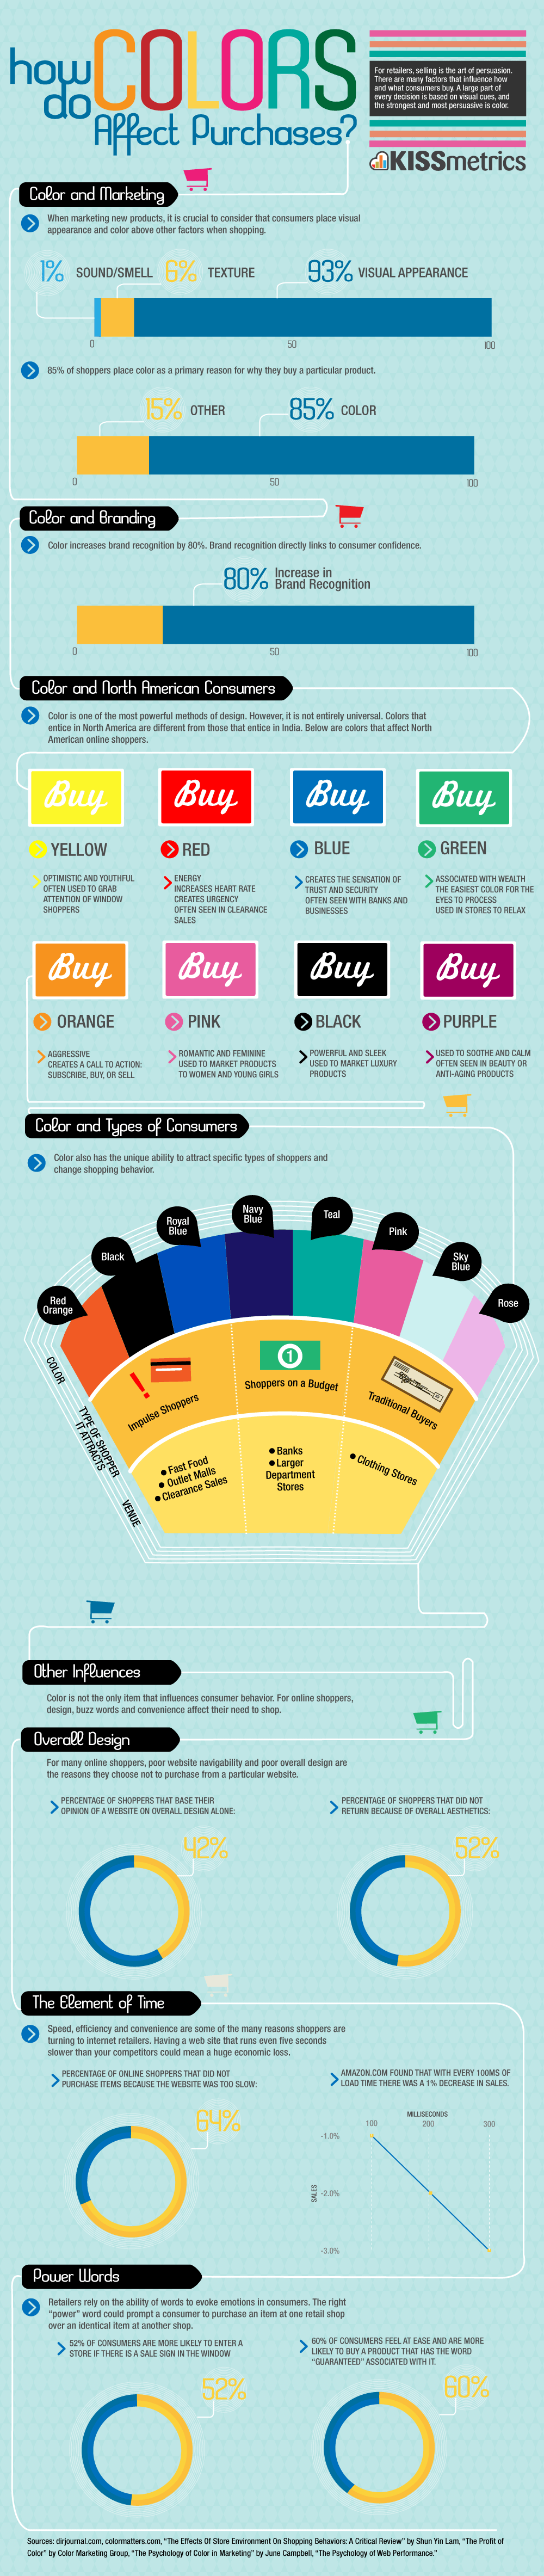 color-purchases-lrg - kissmetrics